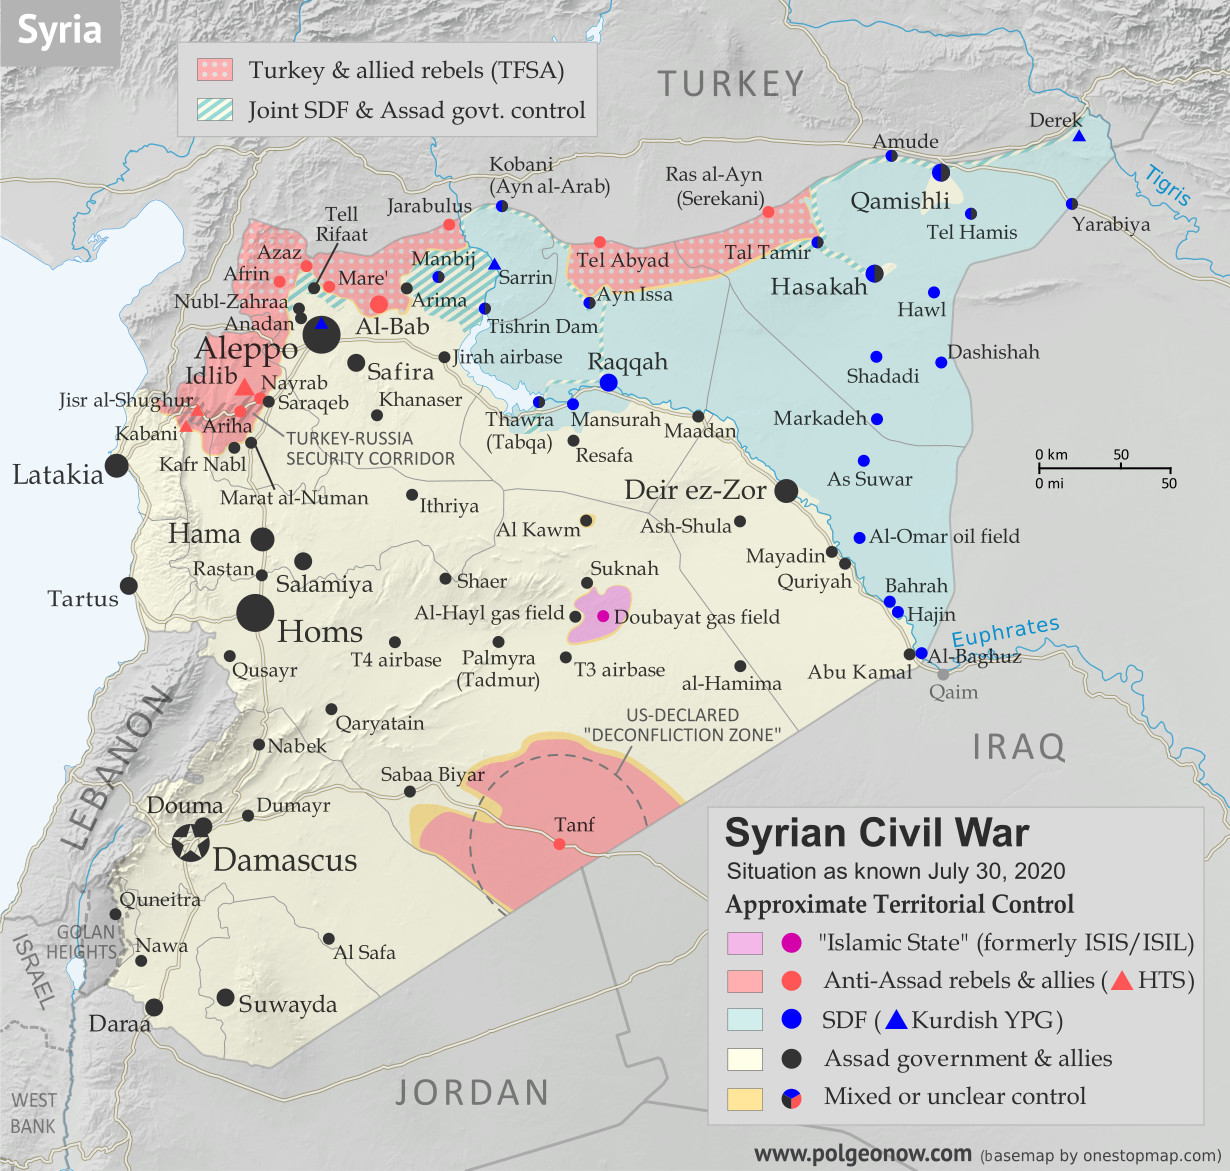 Syrian Civil War map: Territorial control in Syria in late July 2020 (Free Syrian Army rebels, Kurdish YPG, Syrian Democratic Forces (SDF), Hayat Tahrir al-Sham (HTS / Al-Nusra Front), Islamic State (ISIS/ISIL), and others). Includes Turkish/TFSA control, joint SDF-Assad control, US deconfliction zone, and Turkey-Russia security corridor, plus recent locations of conflict and territorial control changes, including Suknah, Abu Kamal, Idlib, and more. Colorblind accessible.